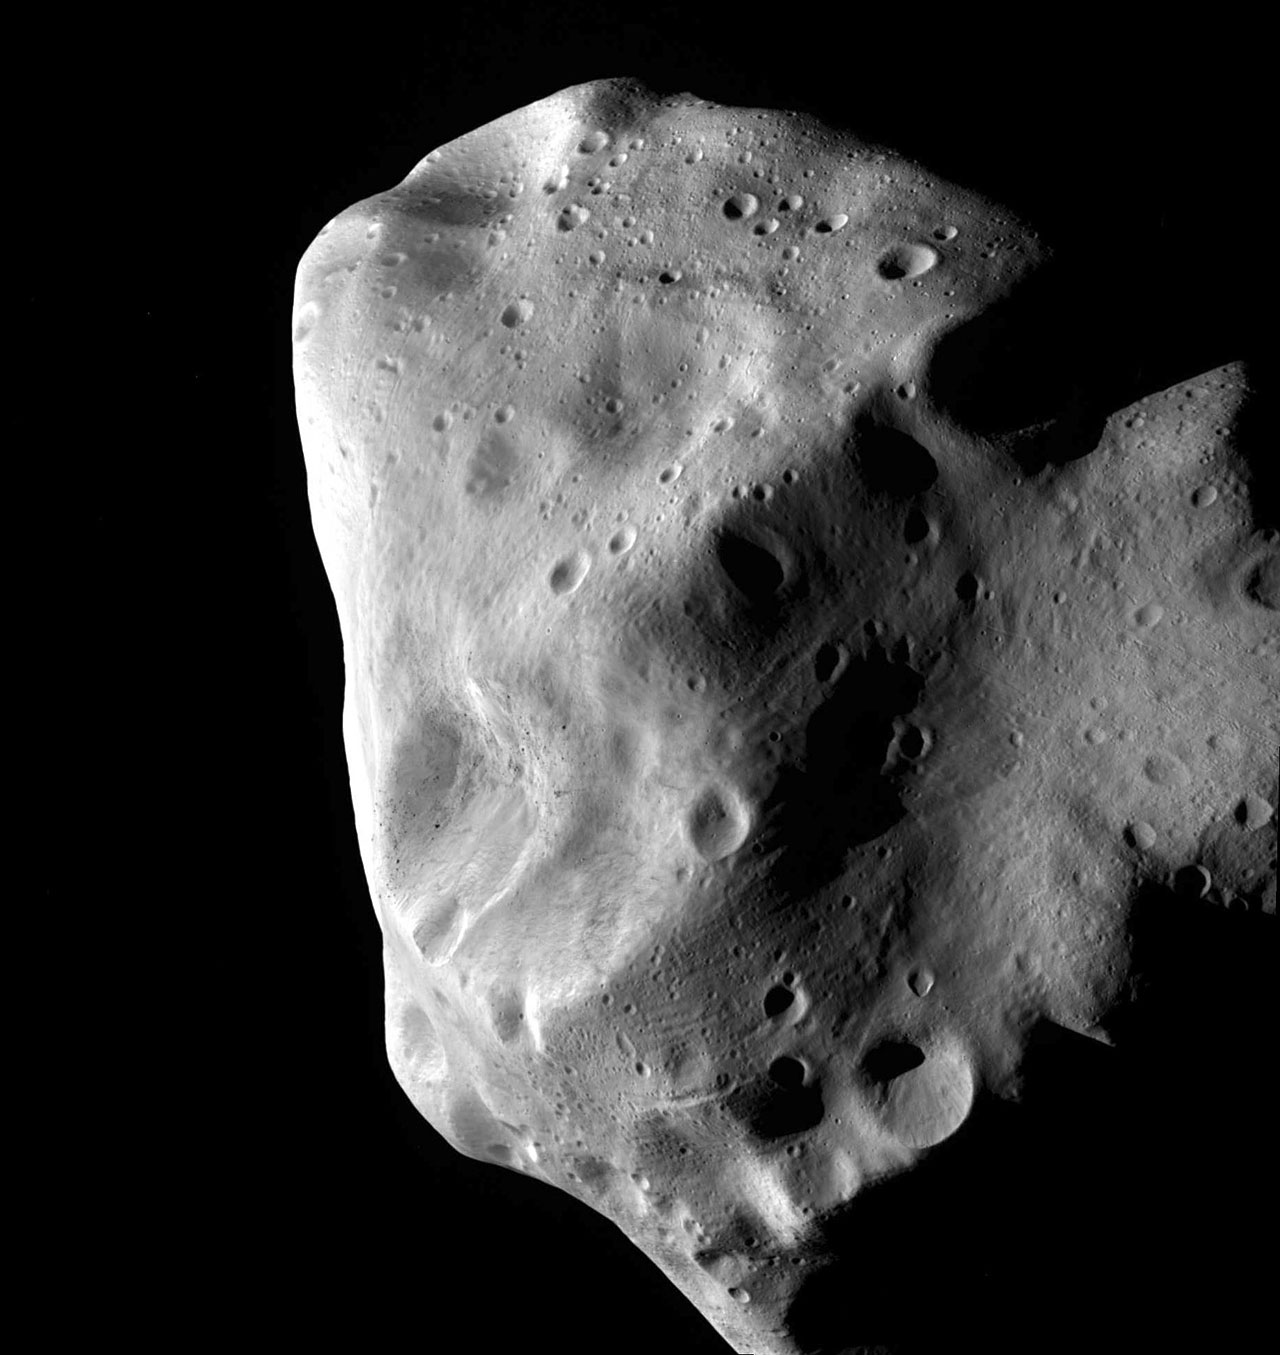 This image of the unusual asteroid Lutetia was taken by ESA's Rosetta probe during its closest approach in July 2010. Lutetia, which is about 100 kilometres across, seems to be a leftover fragment of the same original material that formed the Earth, Venus and Mercury. It is now part of the main asteroid belt, between the orbits of Mars and Jupiter, but its composition suggests that it was originally much closer to the Sun. Credit: ESA 2010 MPS for OSIRIS Team MPS/UPD/LAM/IAA/RSSD/INTA/UPM/DASP/IDA